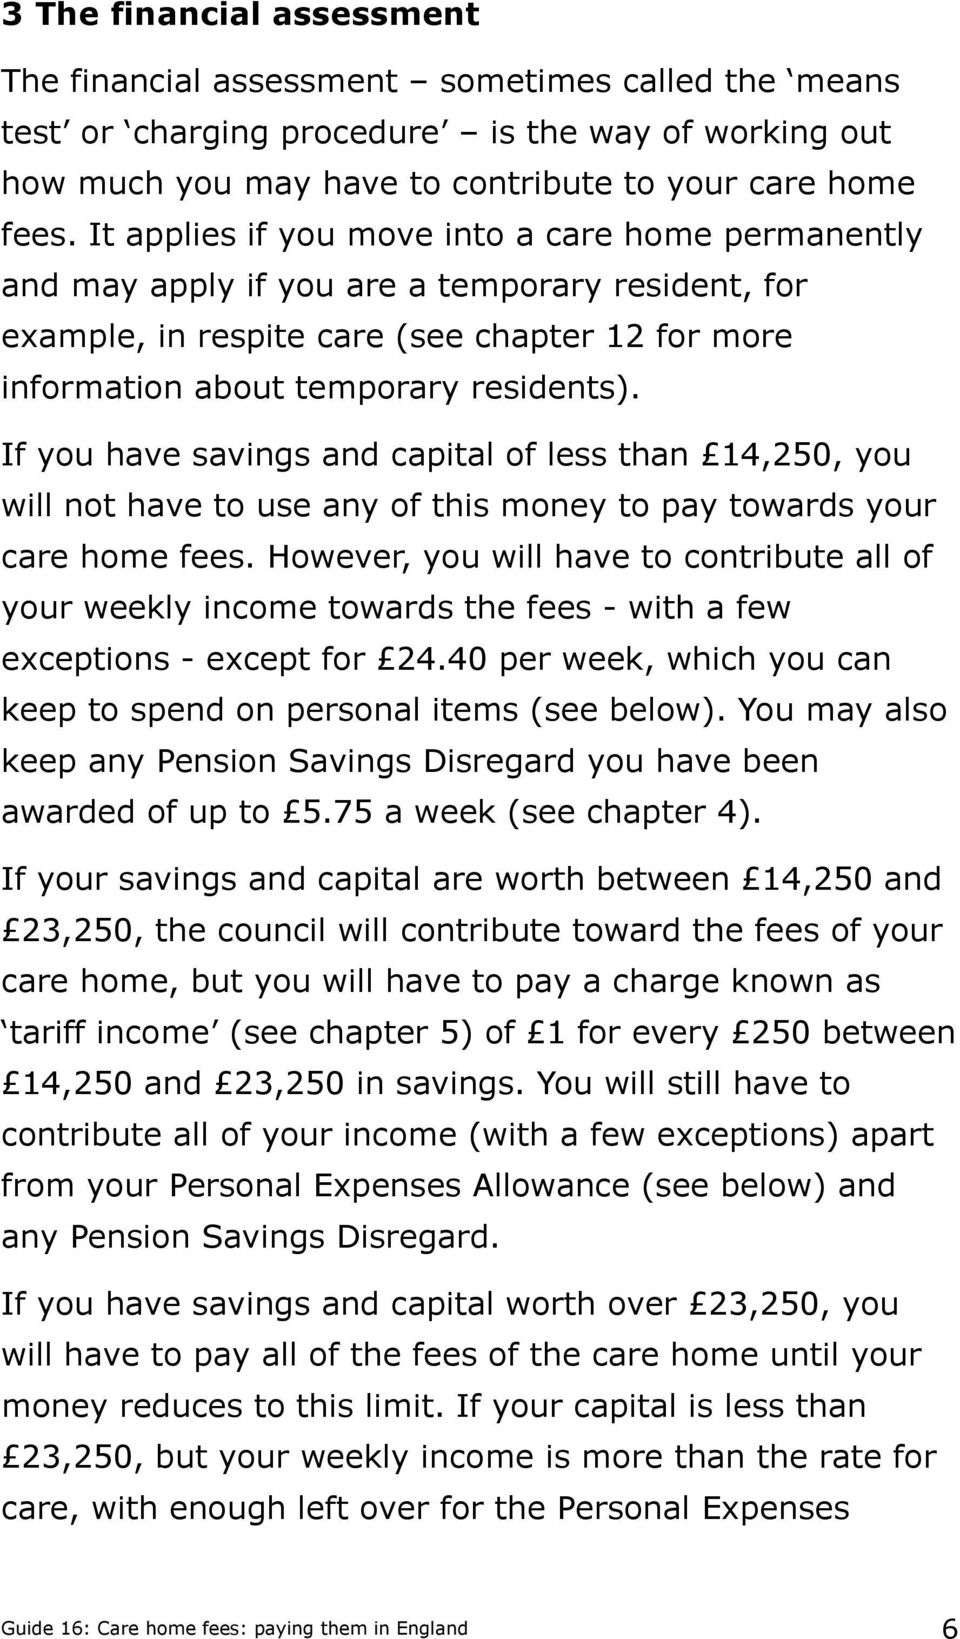 If you have savings and capital of less than 14,250, you will not have to use any of this money to pay towards your care home fees.